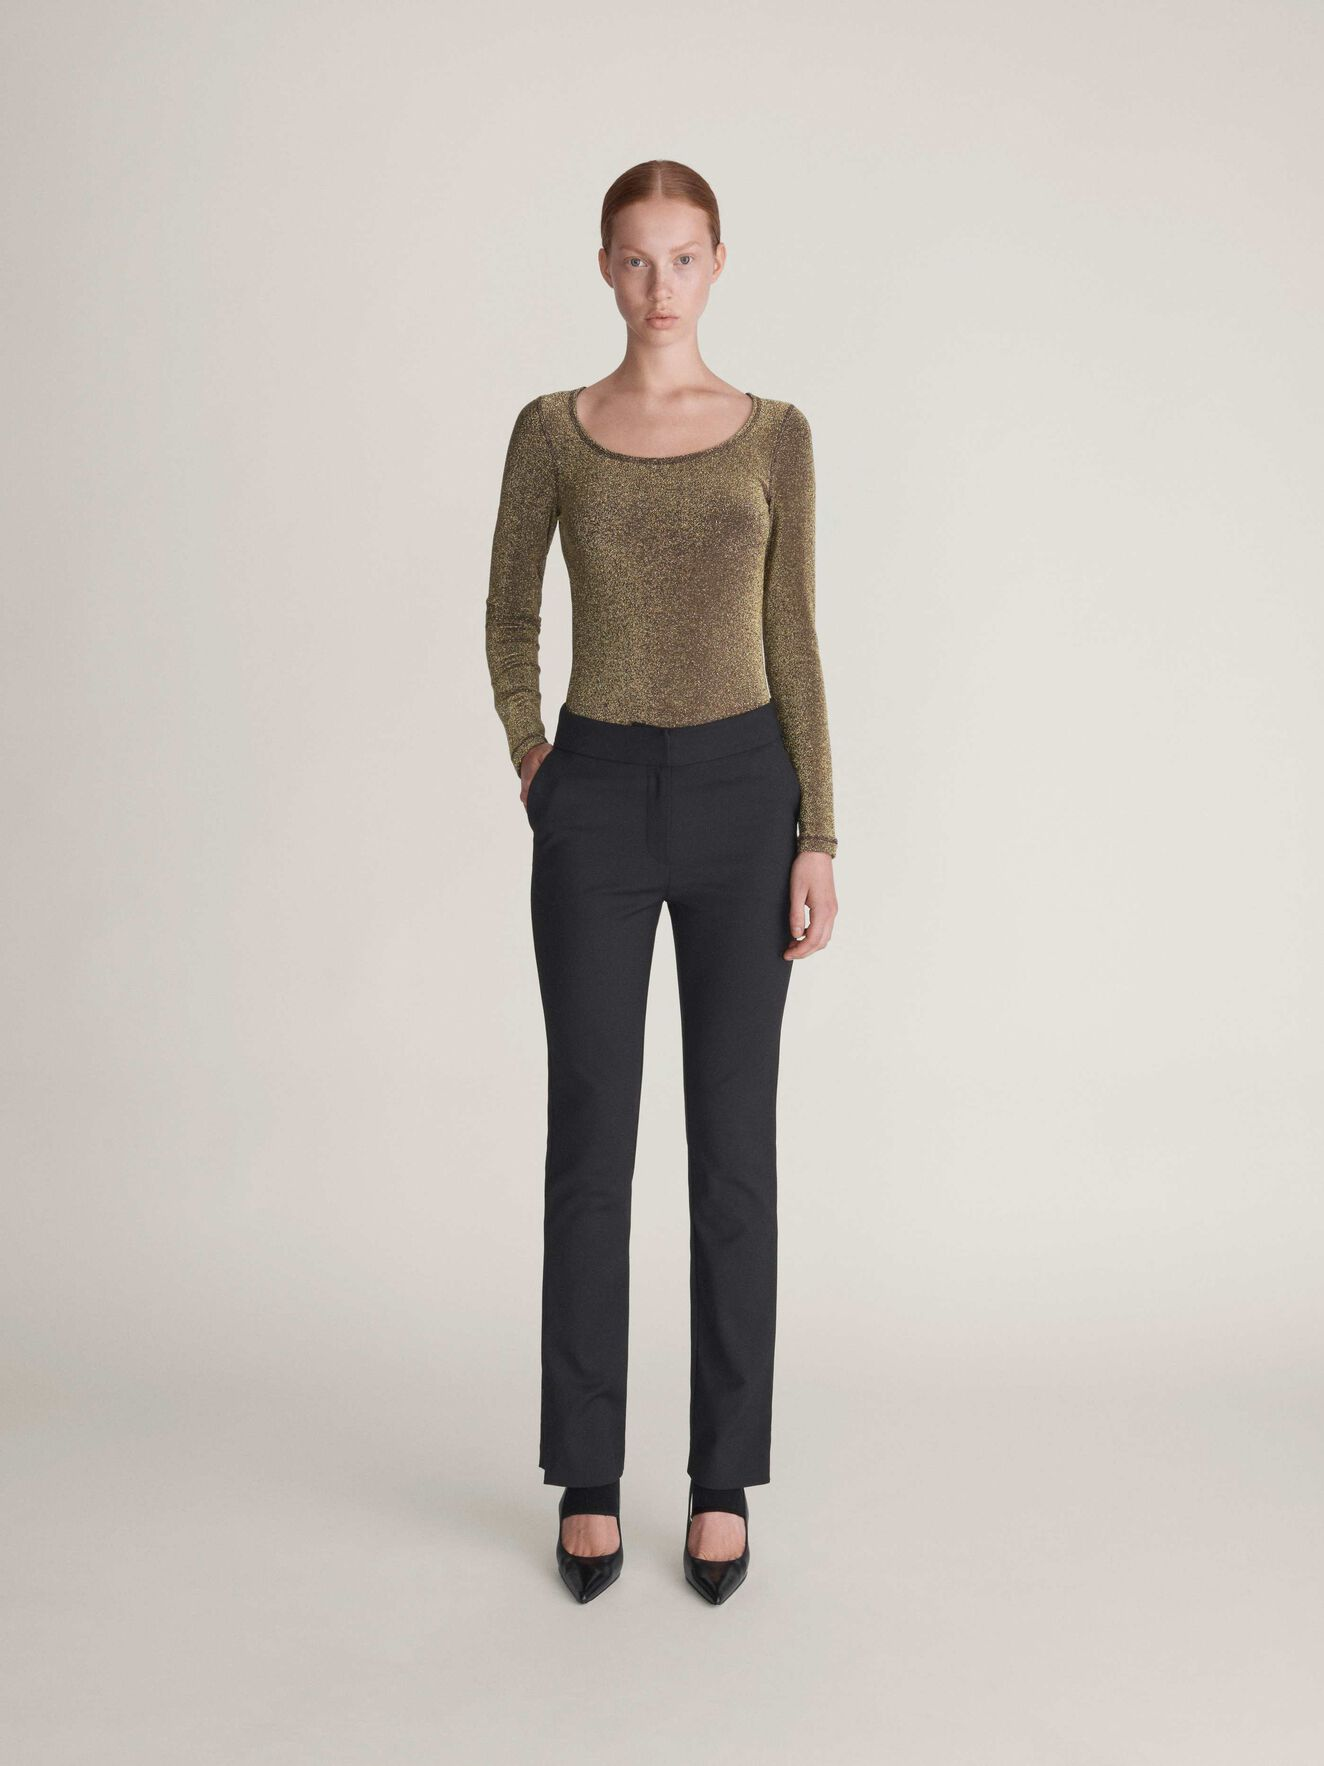 Capella Trousers in Midnight Black from Tiger of Sweden